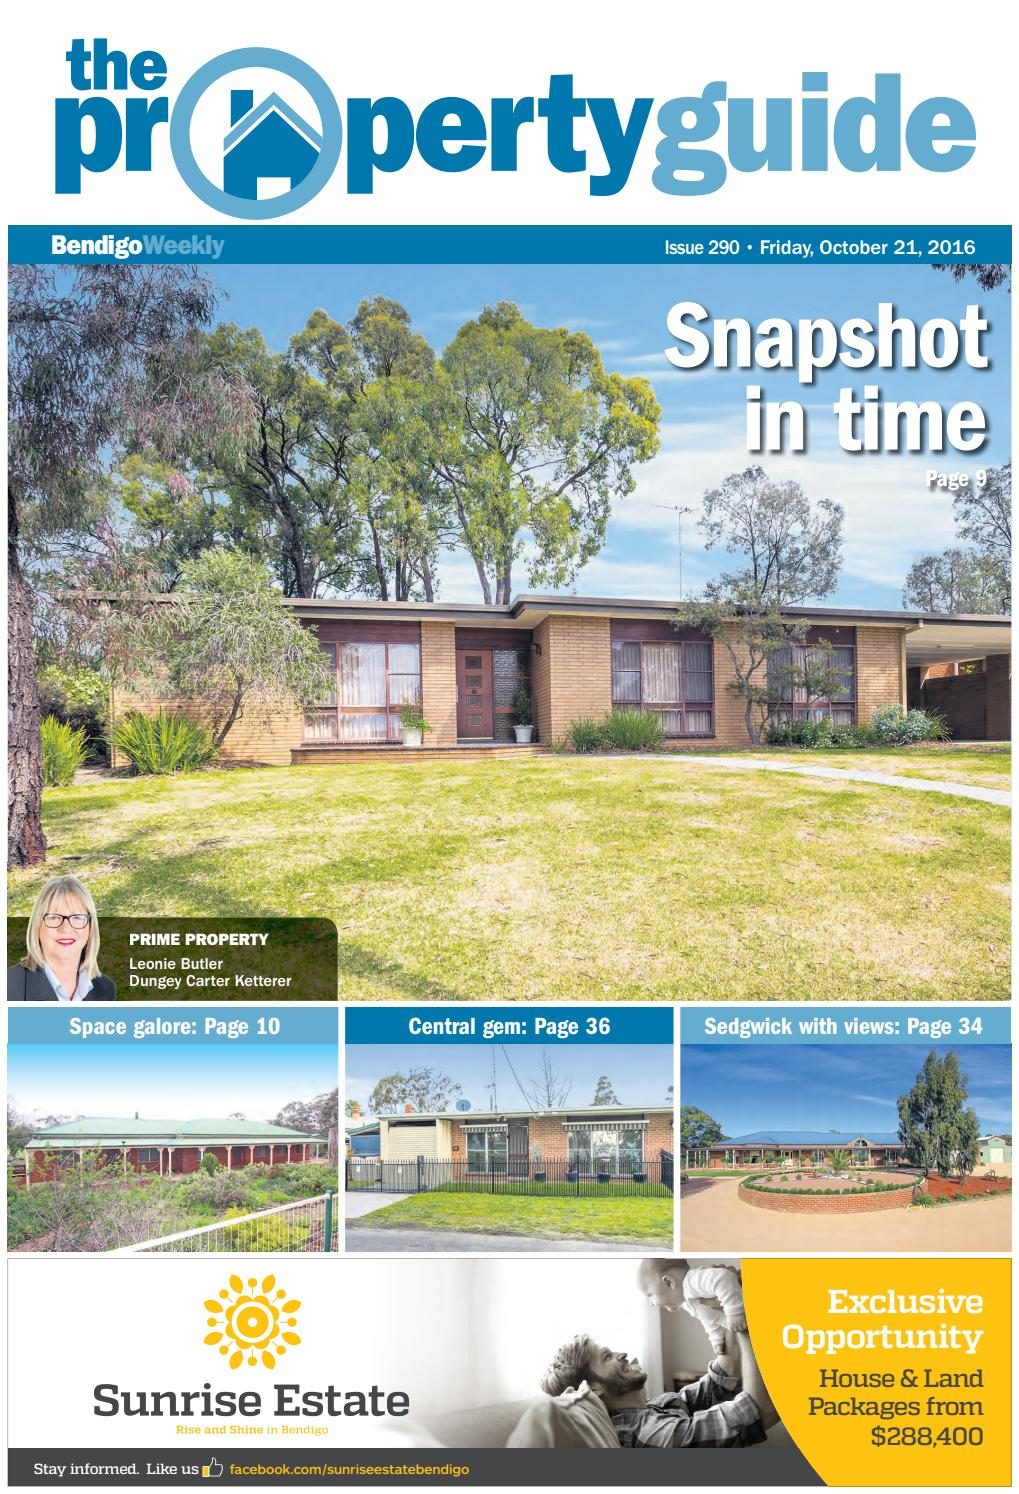 Bendigo weekly property guide issue 290 fri oct 21